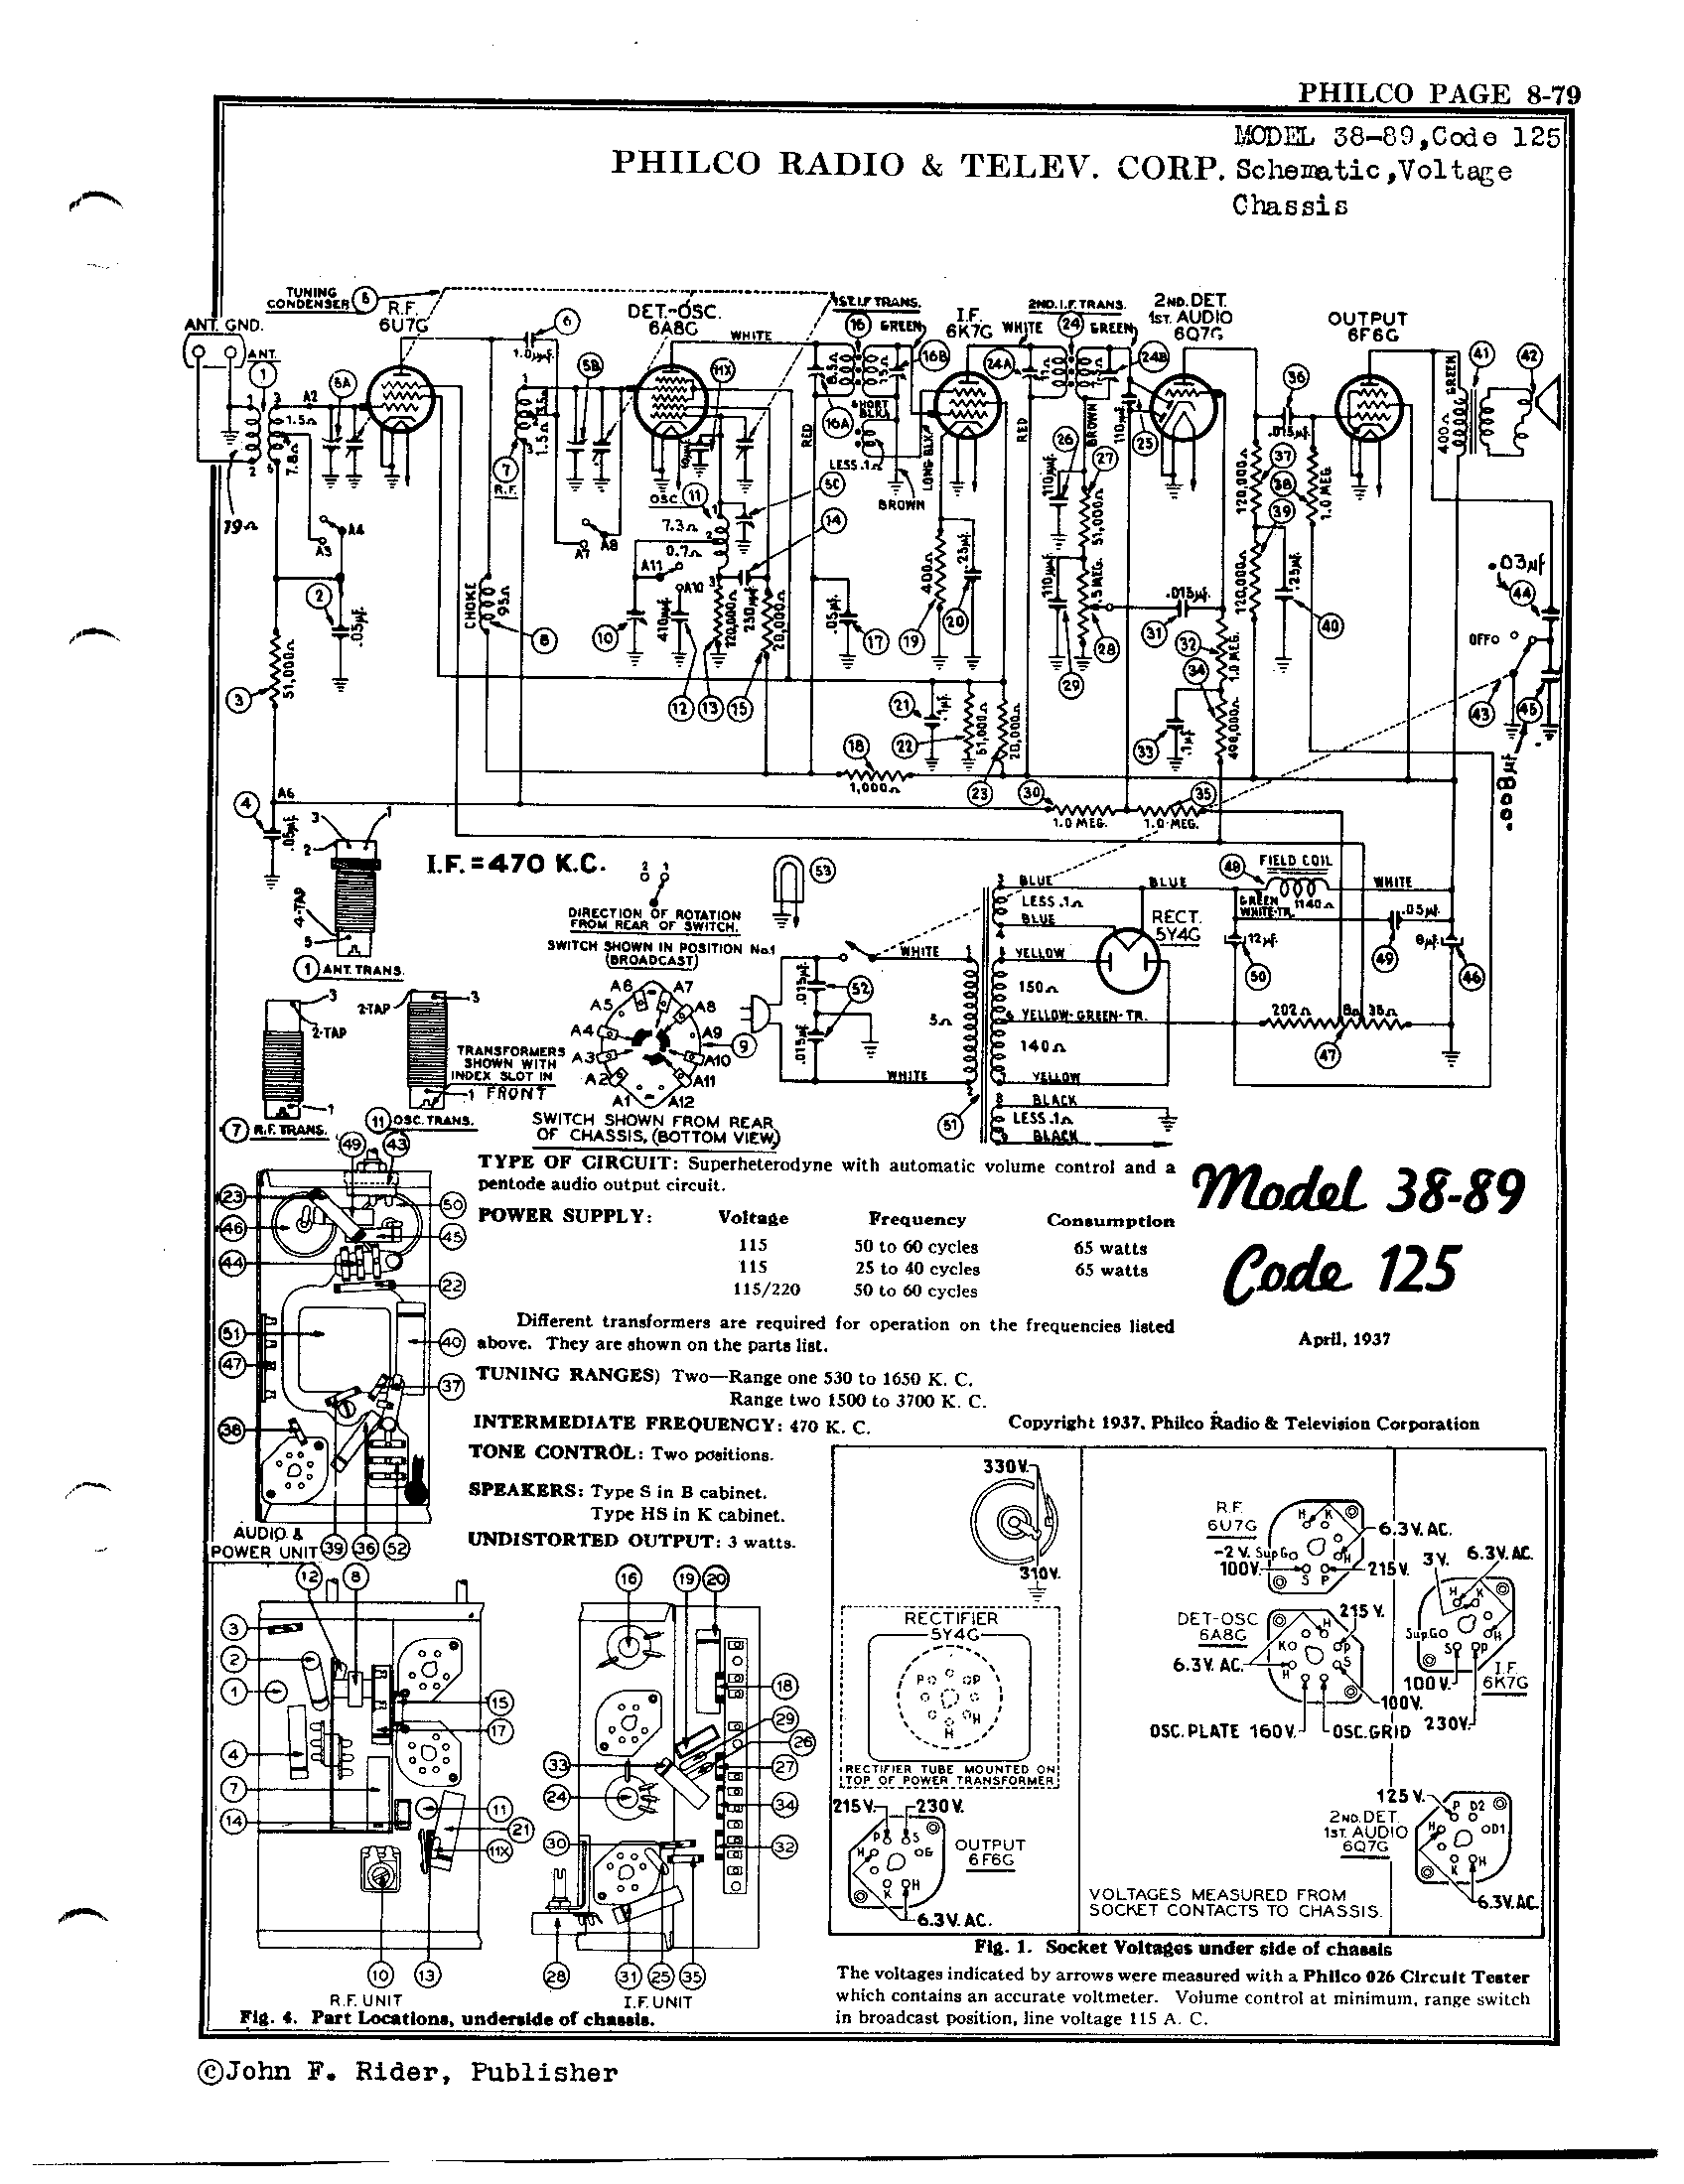 philco_radio_television_corp_38_89_pg8-1  Ford Radio Wiring Schematic on ford radio installation, ford radio fuses, ford windstar radio wiring diagram, ford fusion sel 2006 diagram, ford radio repair, ford radio wiring harness, ford premium sound wiring diagram, ford f150 wiring diagram, ford premium radio wiring, ford car radio wire diagrams, ford factory radio wire colors, ford speaker wiring color codes, ford electrical wiring diagrams, ford explorer wiring diagram, ford wire harness color code, ford factory radio wiring, ford ranger 2.9 wiring-diagram, ford truck radio wiring diagram, ford stereo wiring, ford stereo diagram,